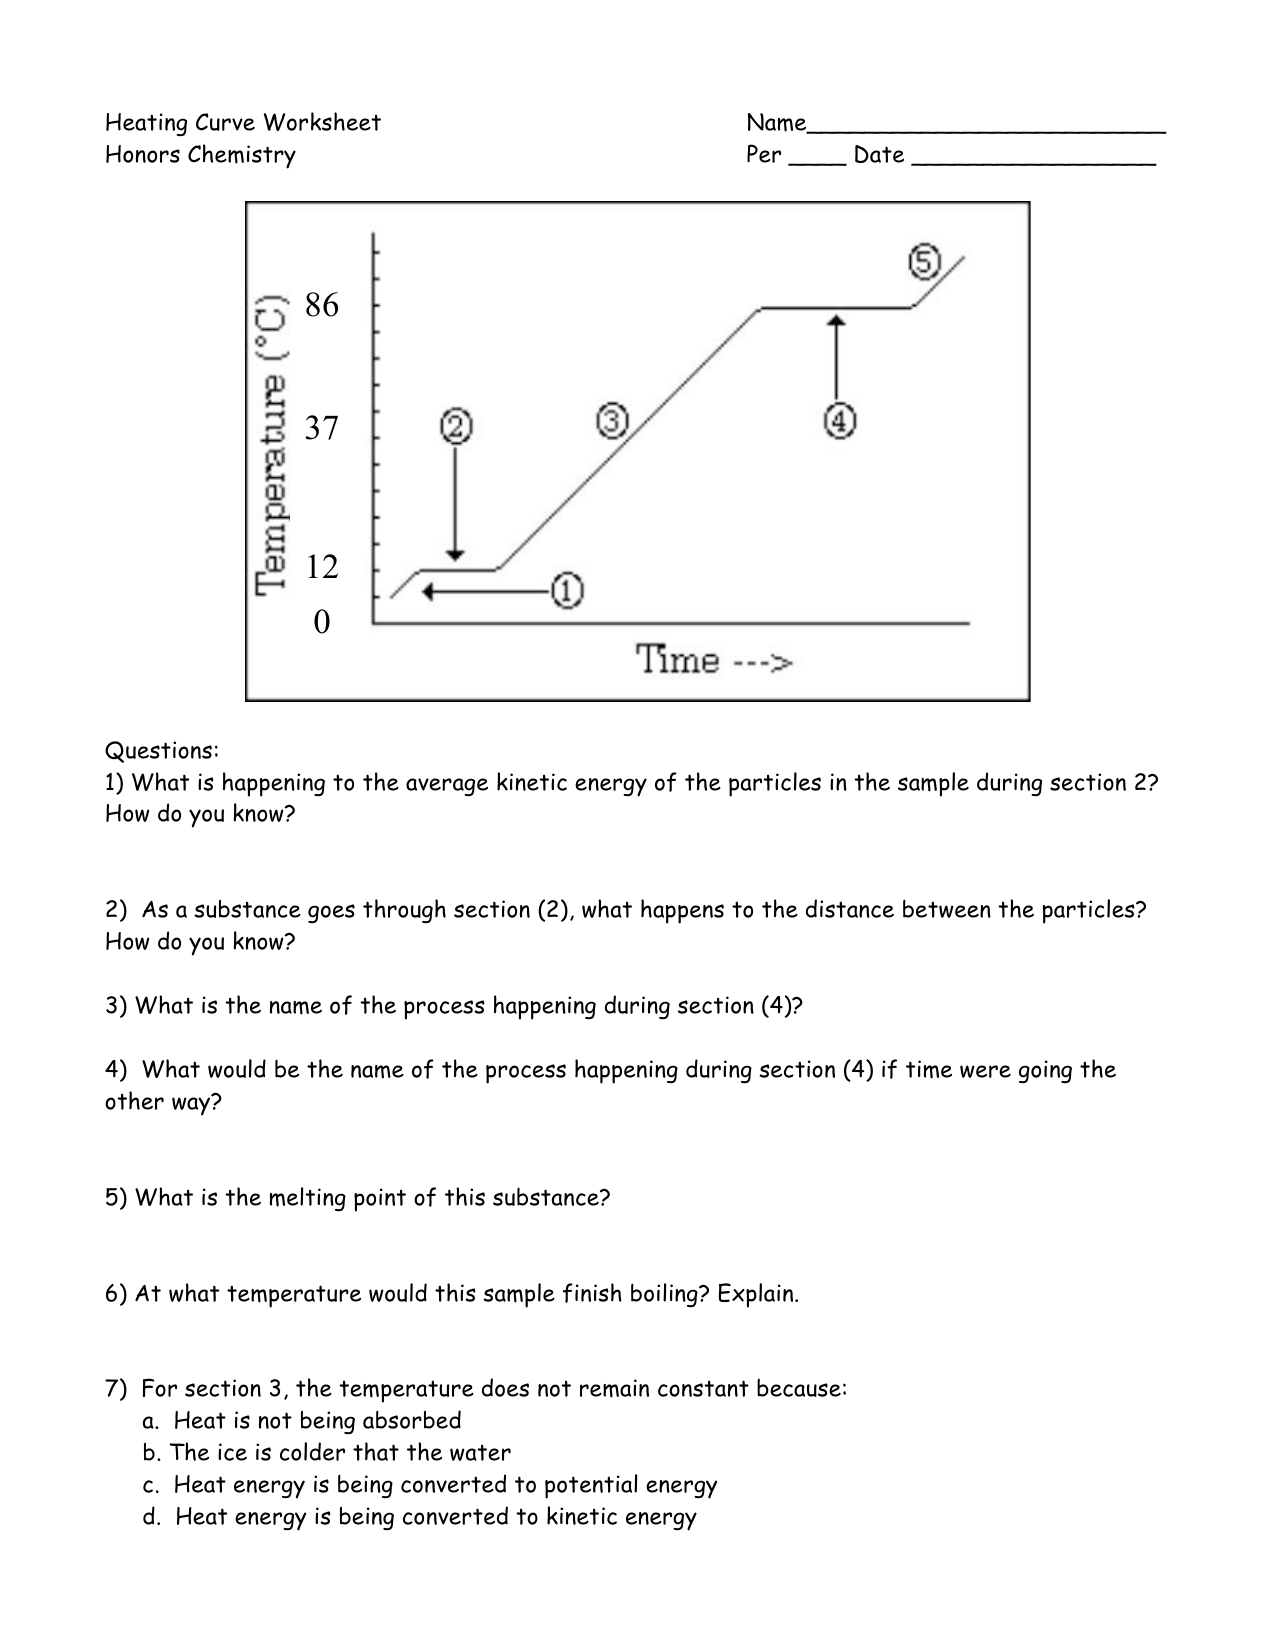 Heating Curve Worksheet 1